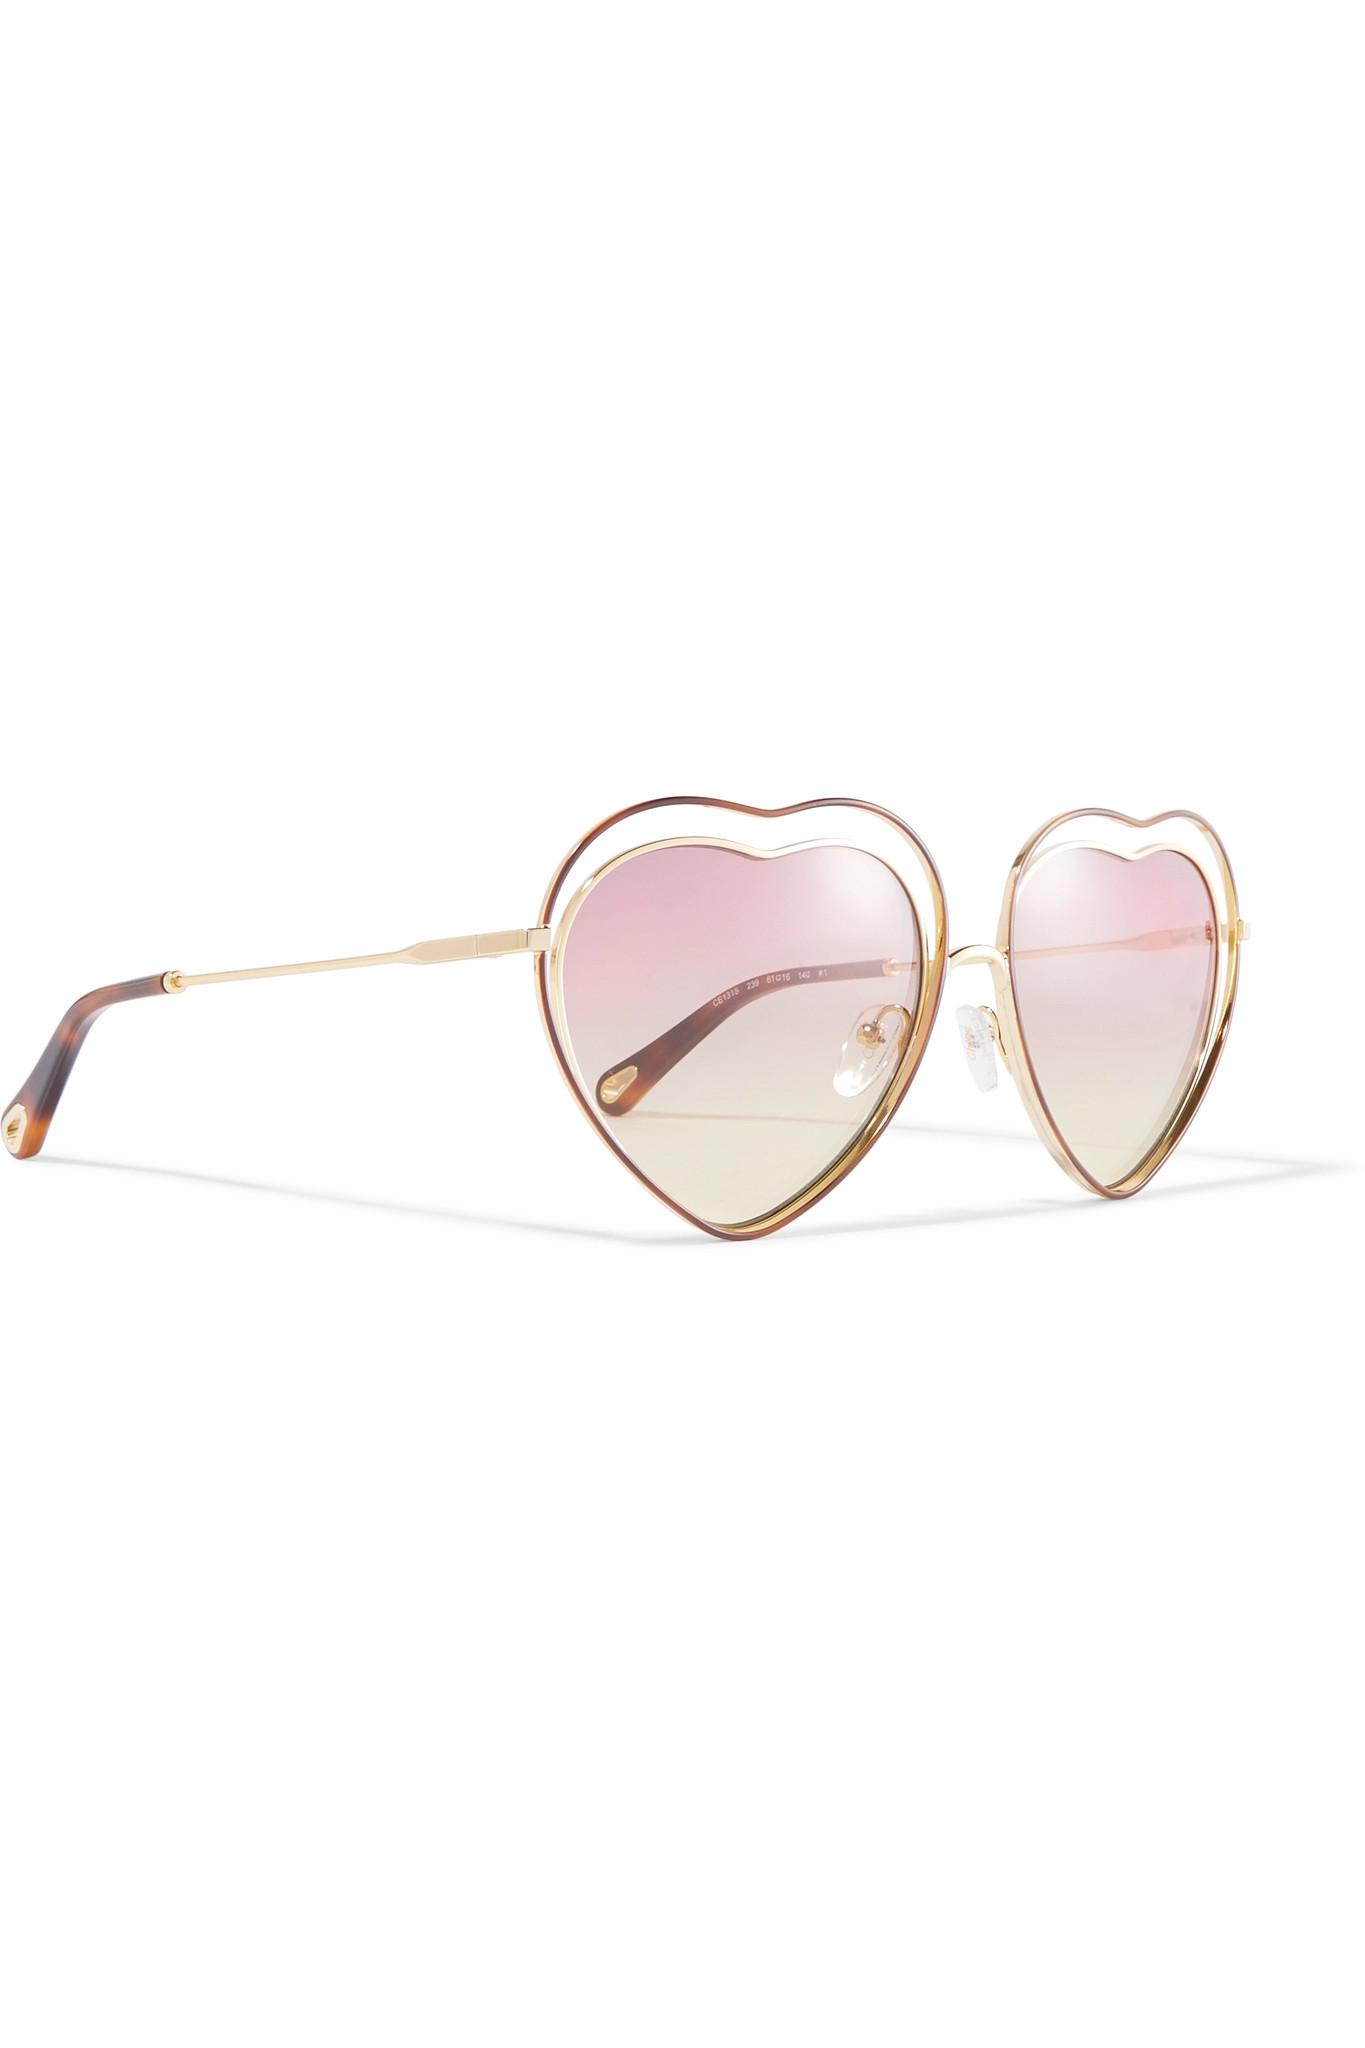 860882250bb Lyst - Chloé Poppy Love Heart-shaped Acetate And Gold-tone ...